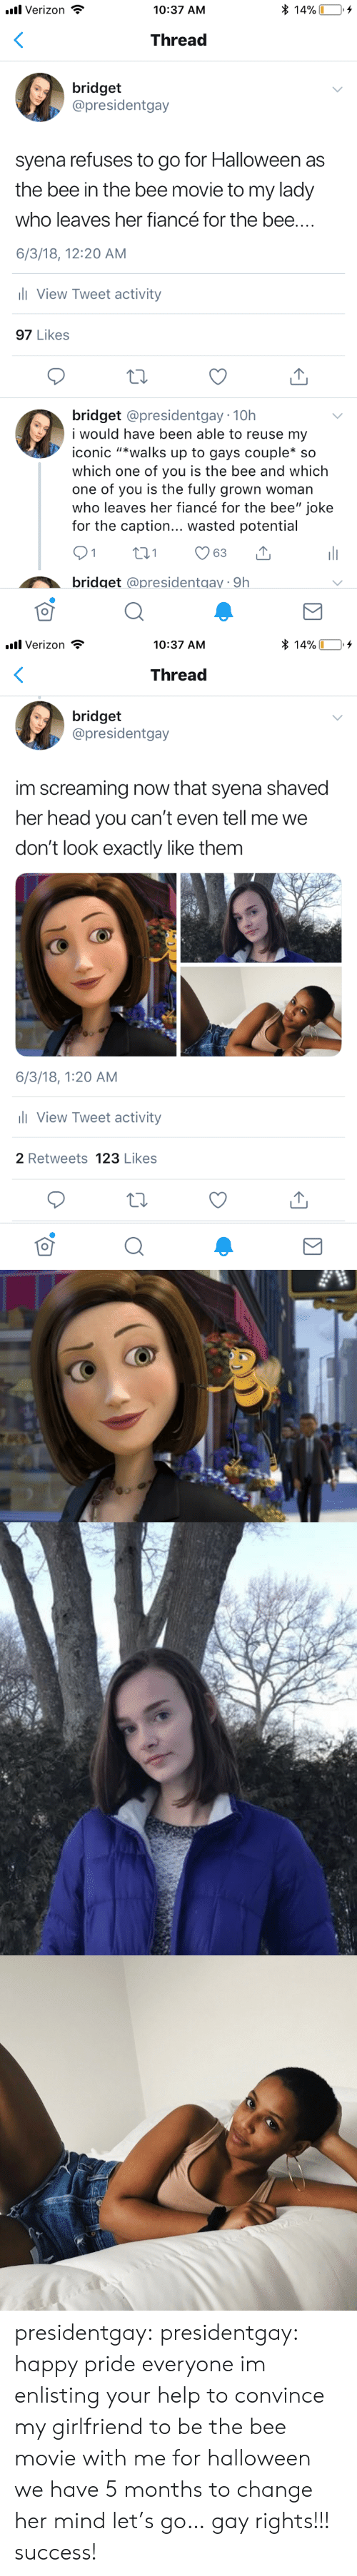 "Bee Movie, Halloween, and Head: * 14%  l Verizon  10:37 AM  Thread  bridget  @presidentgay  syena refuses to go for Halloween as  the bee in the bee movie to my lady  who leaves her fiancé for the bee....  6/3/18, 12:20 AM  ll View Tweet activity  97 Likes  bridget @presidentgay 10h  i would have be  able to reuse my  iconic ""*walks up to gays couple* so  which one of you is the bee and which  one of you is the fully grown woman  who leaves her fiancé for the bee"" joke  for the caption... wasted potential  21  t1  63  bridget @presidentgay 9h   l Verizon  * 14%  10:37 AM  Thread  bridget  @presidentgay  im screaming now that syena shaved  her head you can't even tell me we  don't look exactly like them  6/3/18, 1:20 AM  l View Tweet activity  2 Retweets 123 Likes presidentgay:  presidentgay: happy pride everyone im enlisting your help to convince my girlfriend to be the bee movie with me for halloween we have 5 months to change her mind let's go… gay rights!!! success!"